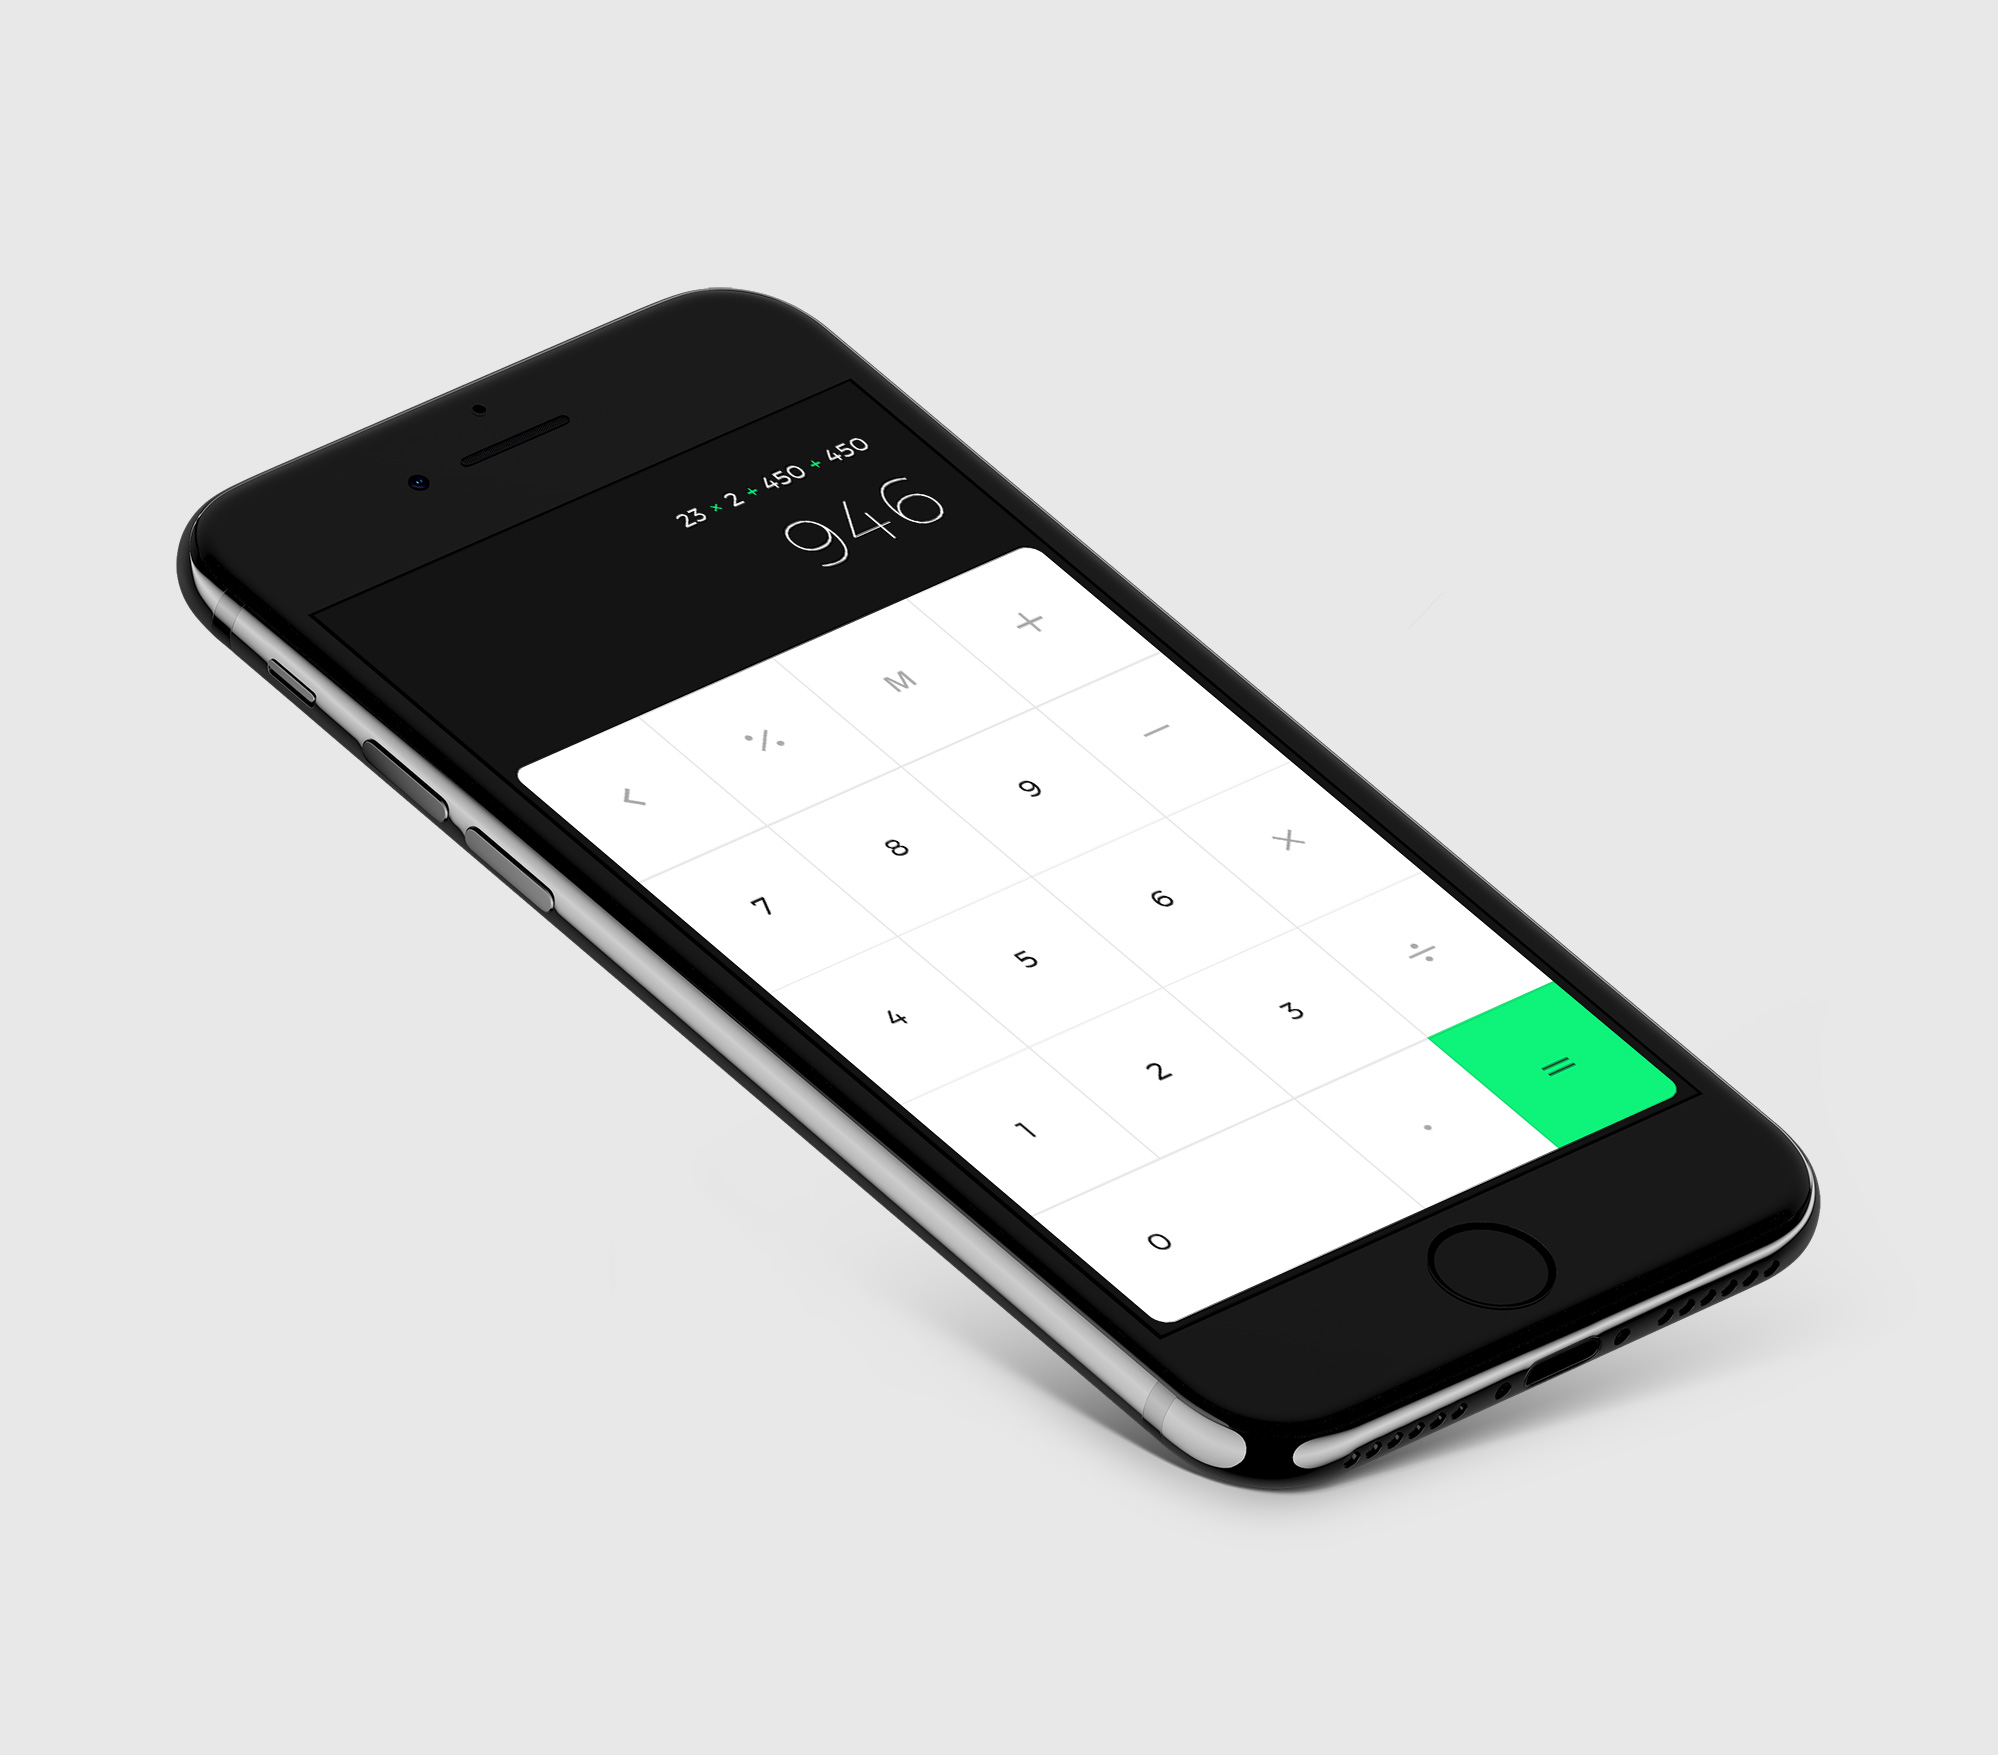 iPhone Mockup with iOs Calc